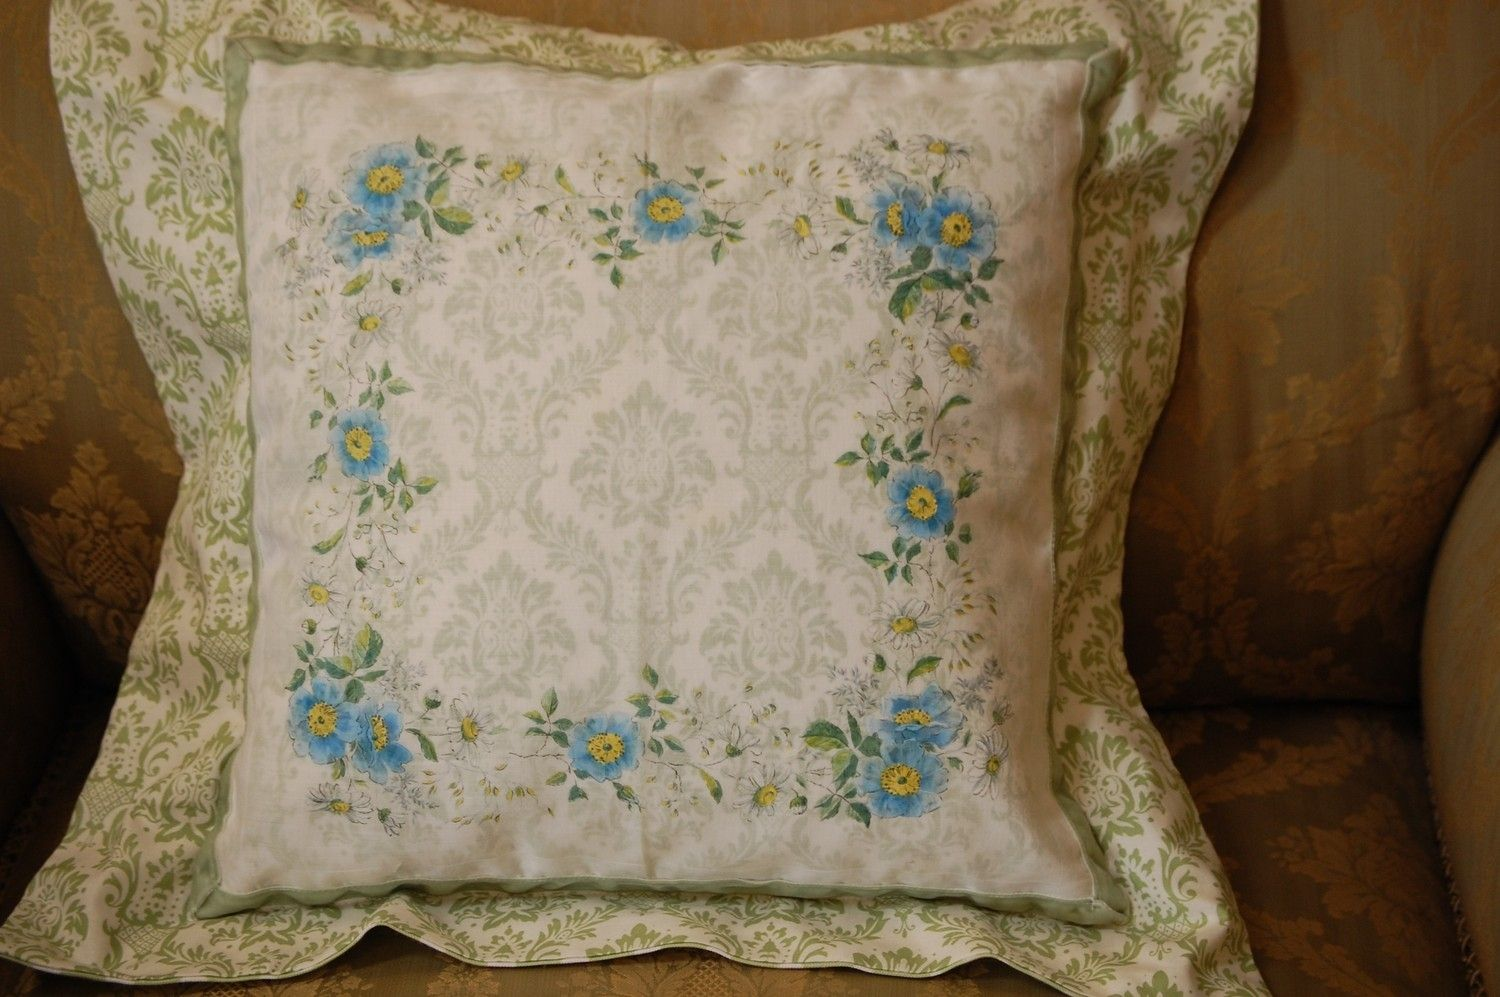 Hand Made Shabby Chic Pillow With Soft Blue Hankie by Petunia Rose Designs CustomMade.com